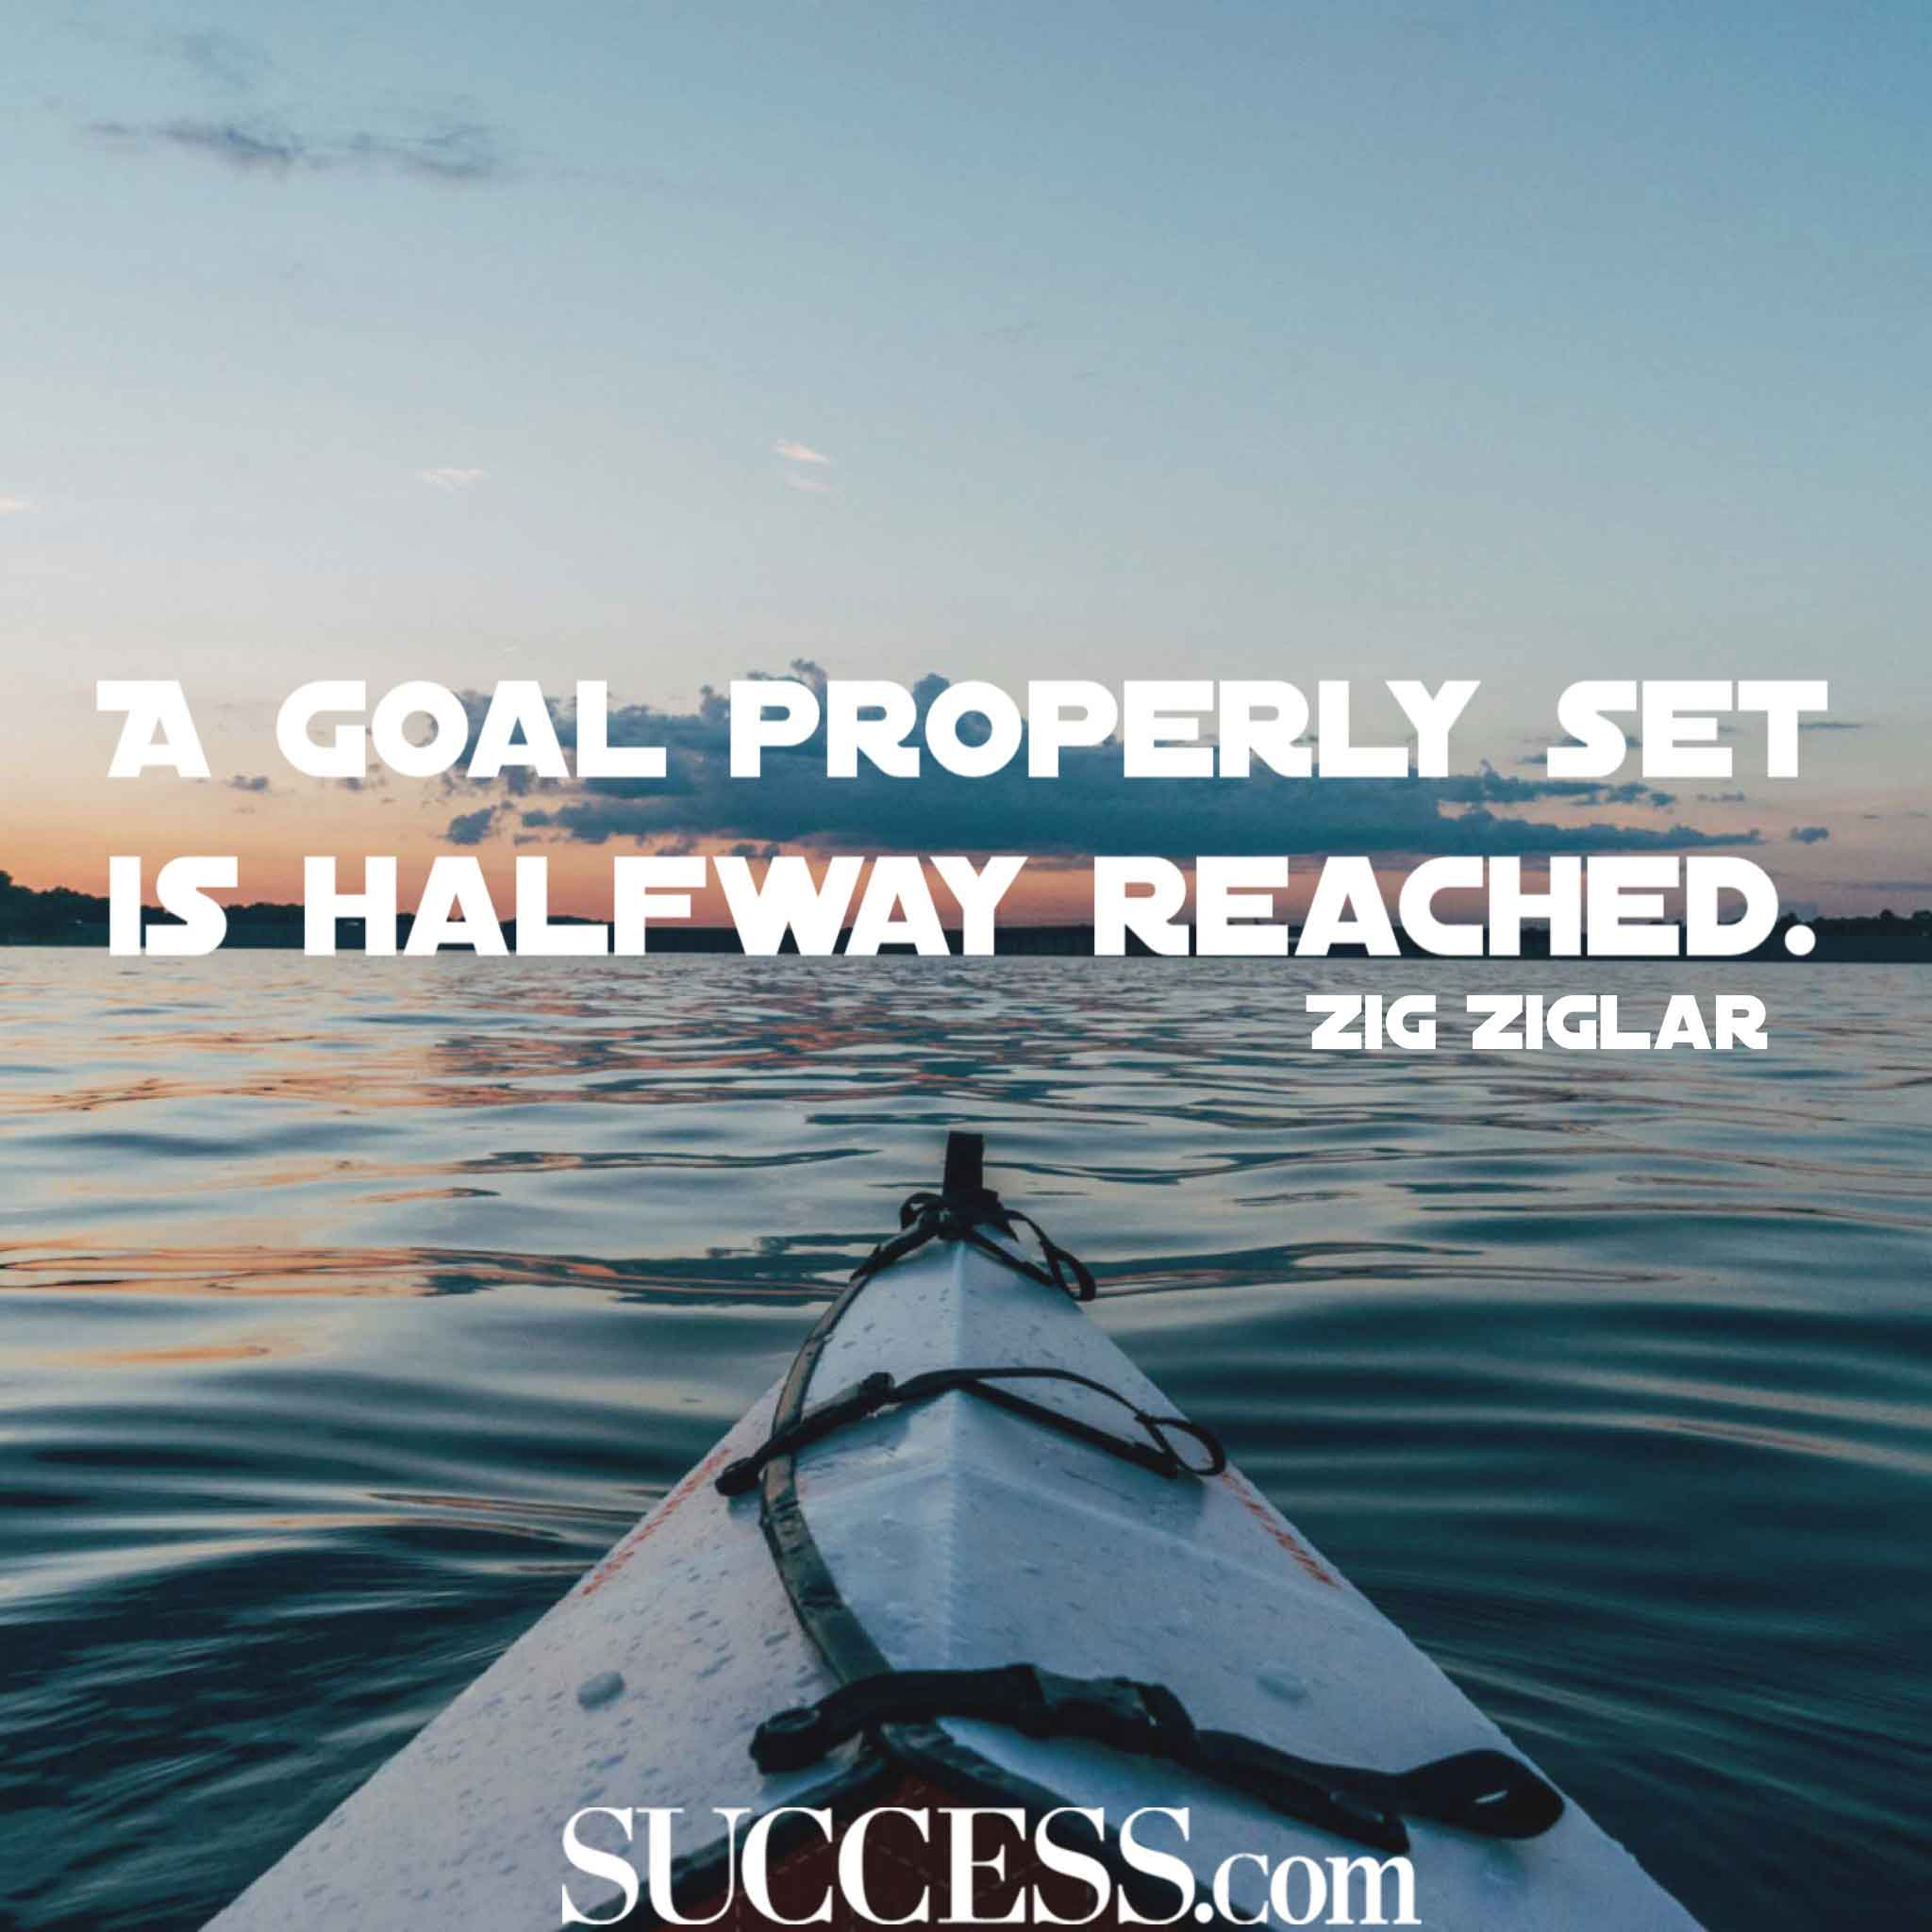 Momentum Have Keep Going Goals One Greater Constantly Way